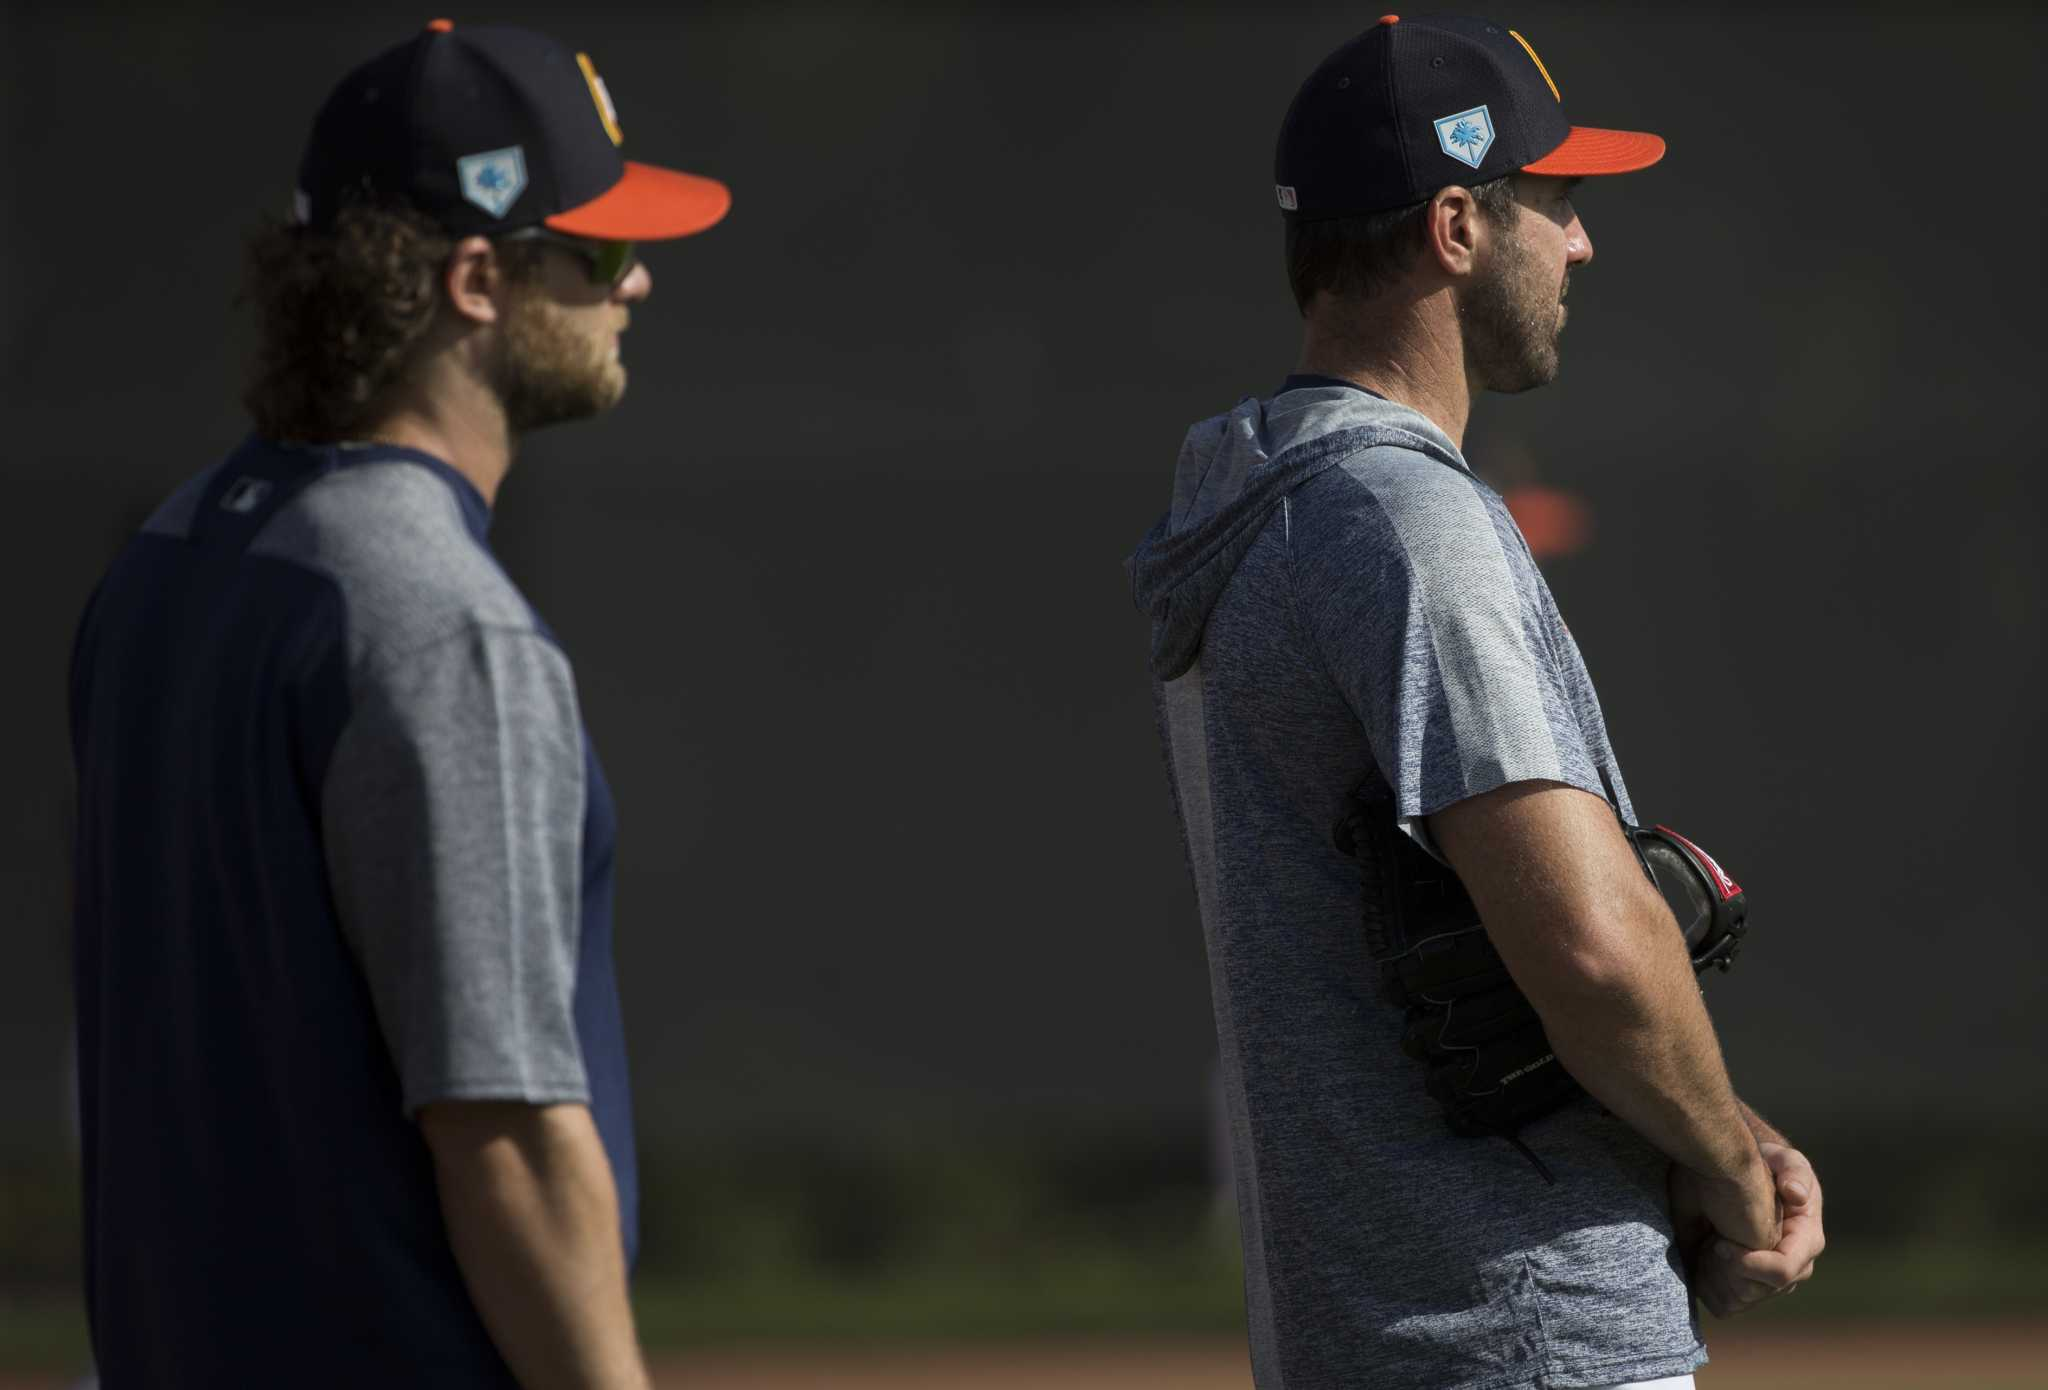 Arms race: Justin Verlander, Gerrit Cole give Astros starting edge